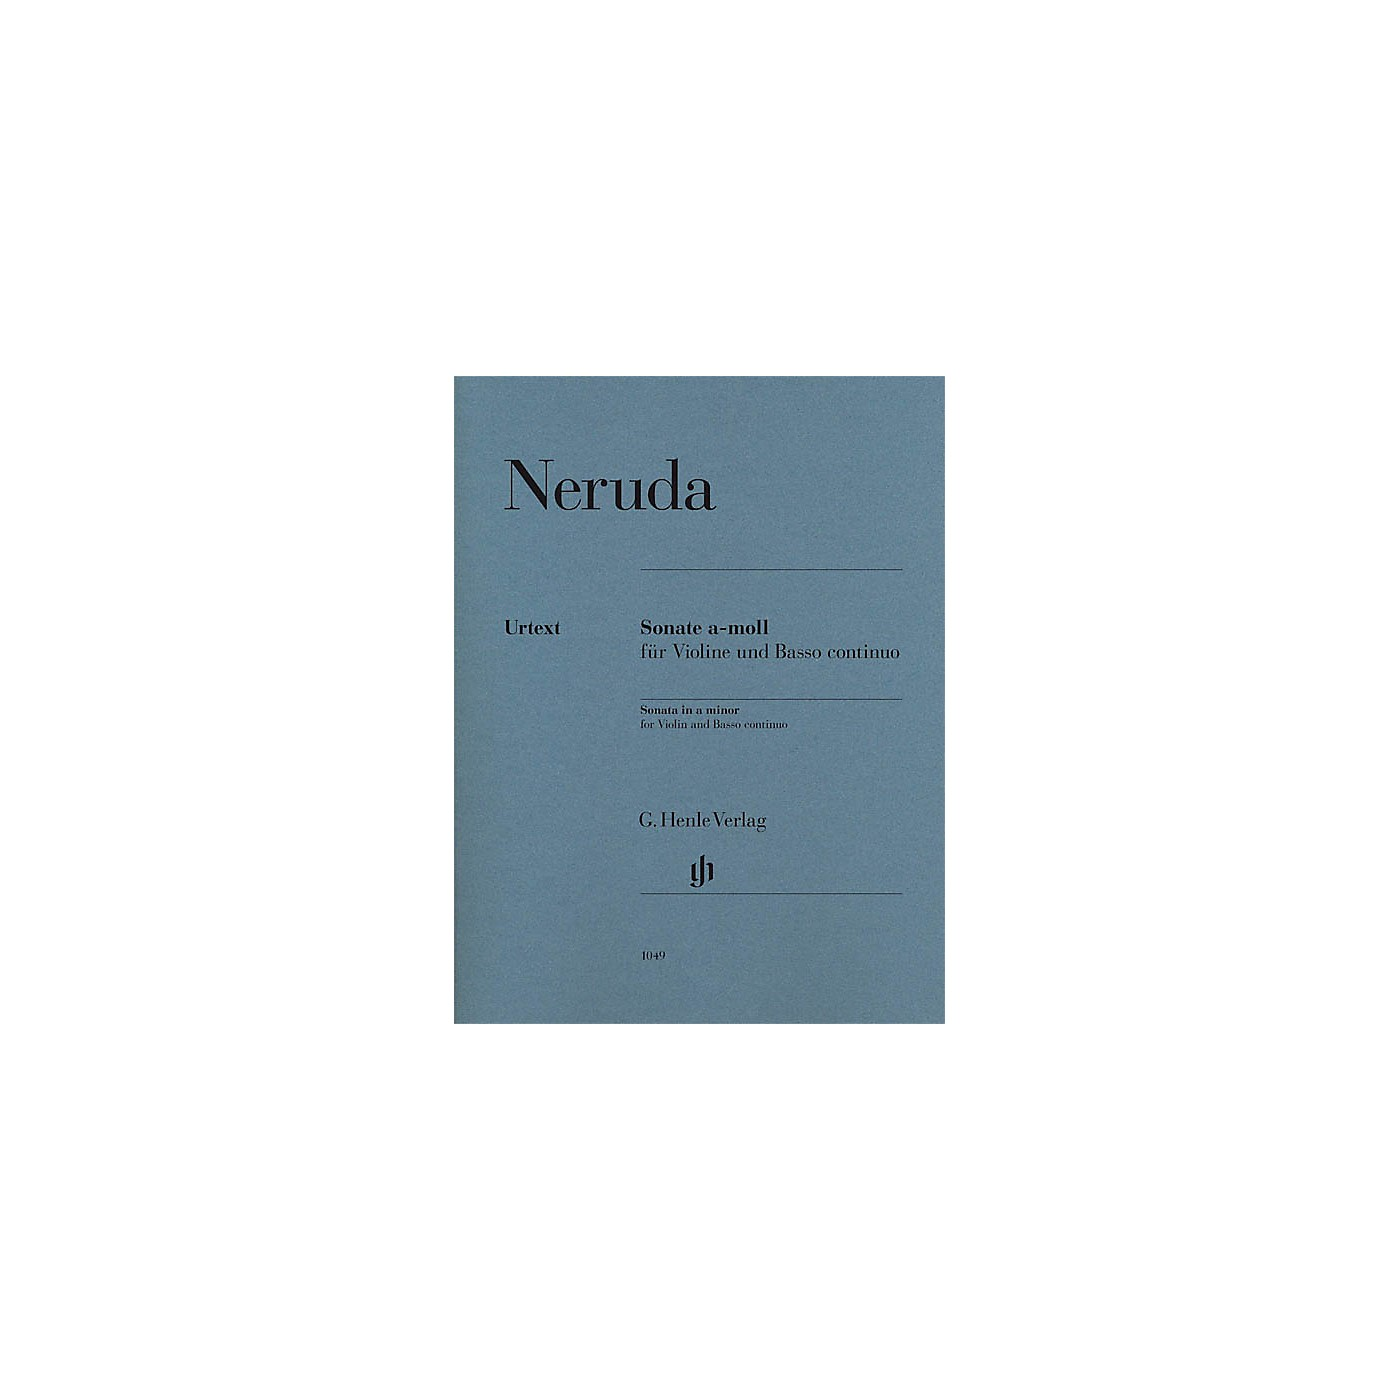 G. Henle Verlag Johann Baptist Georg Neruda - Sonata in A min for Violin and Basso Continuo Henle Music Edited by Gerlach thumbnail